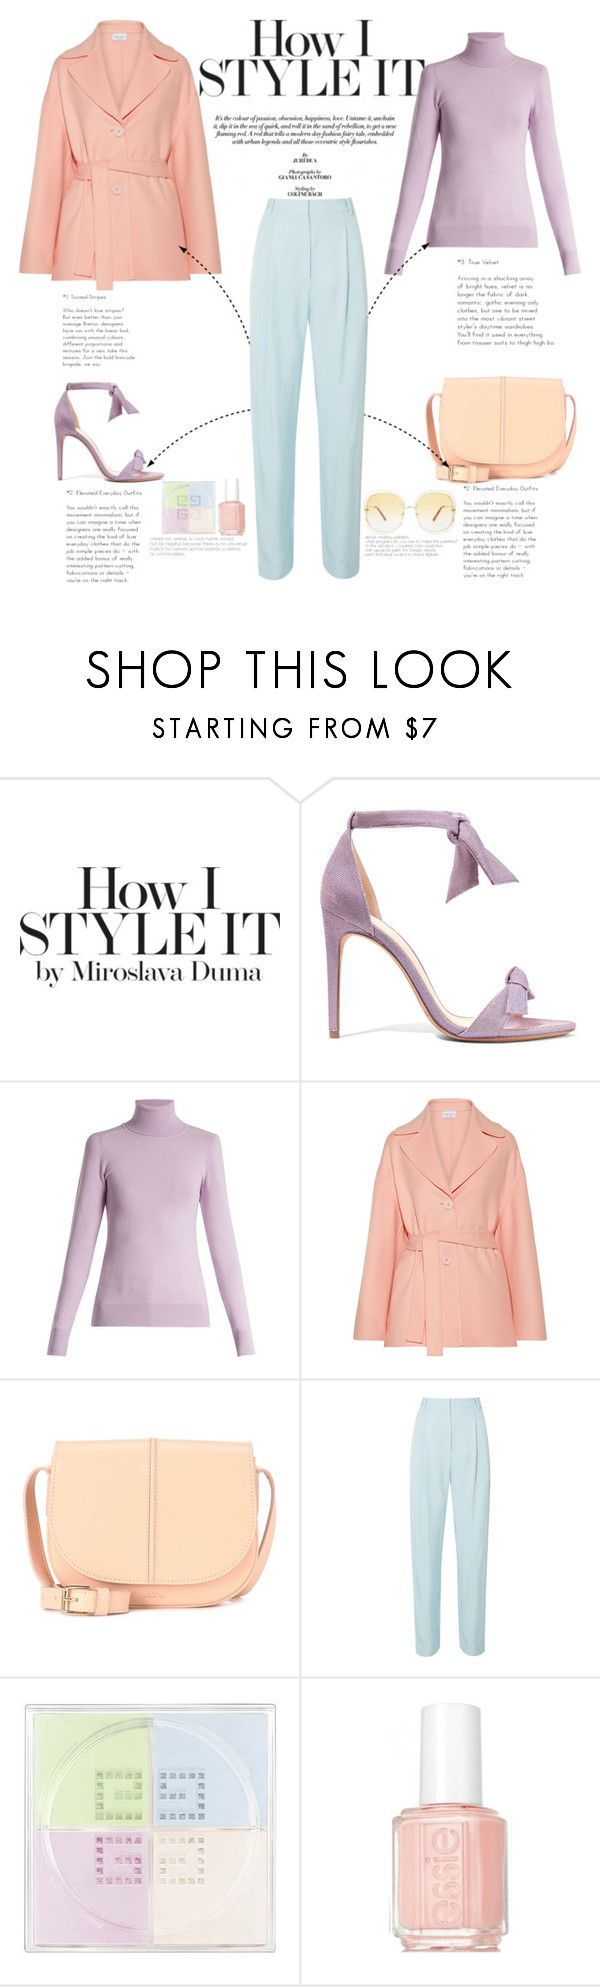 """Triad harmony"" by naki14 ❤ liked on Polyvore featuring Alexandre Birman, JoosTricot, Mansur Gavriel, A.P.C., TIBI, Givenchy, Essie, Chloé, pastel and springtrend"